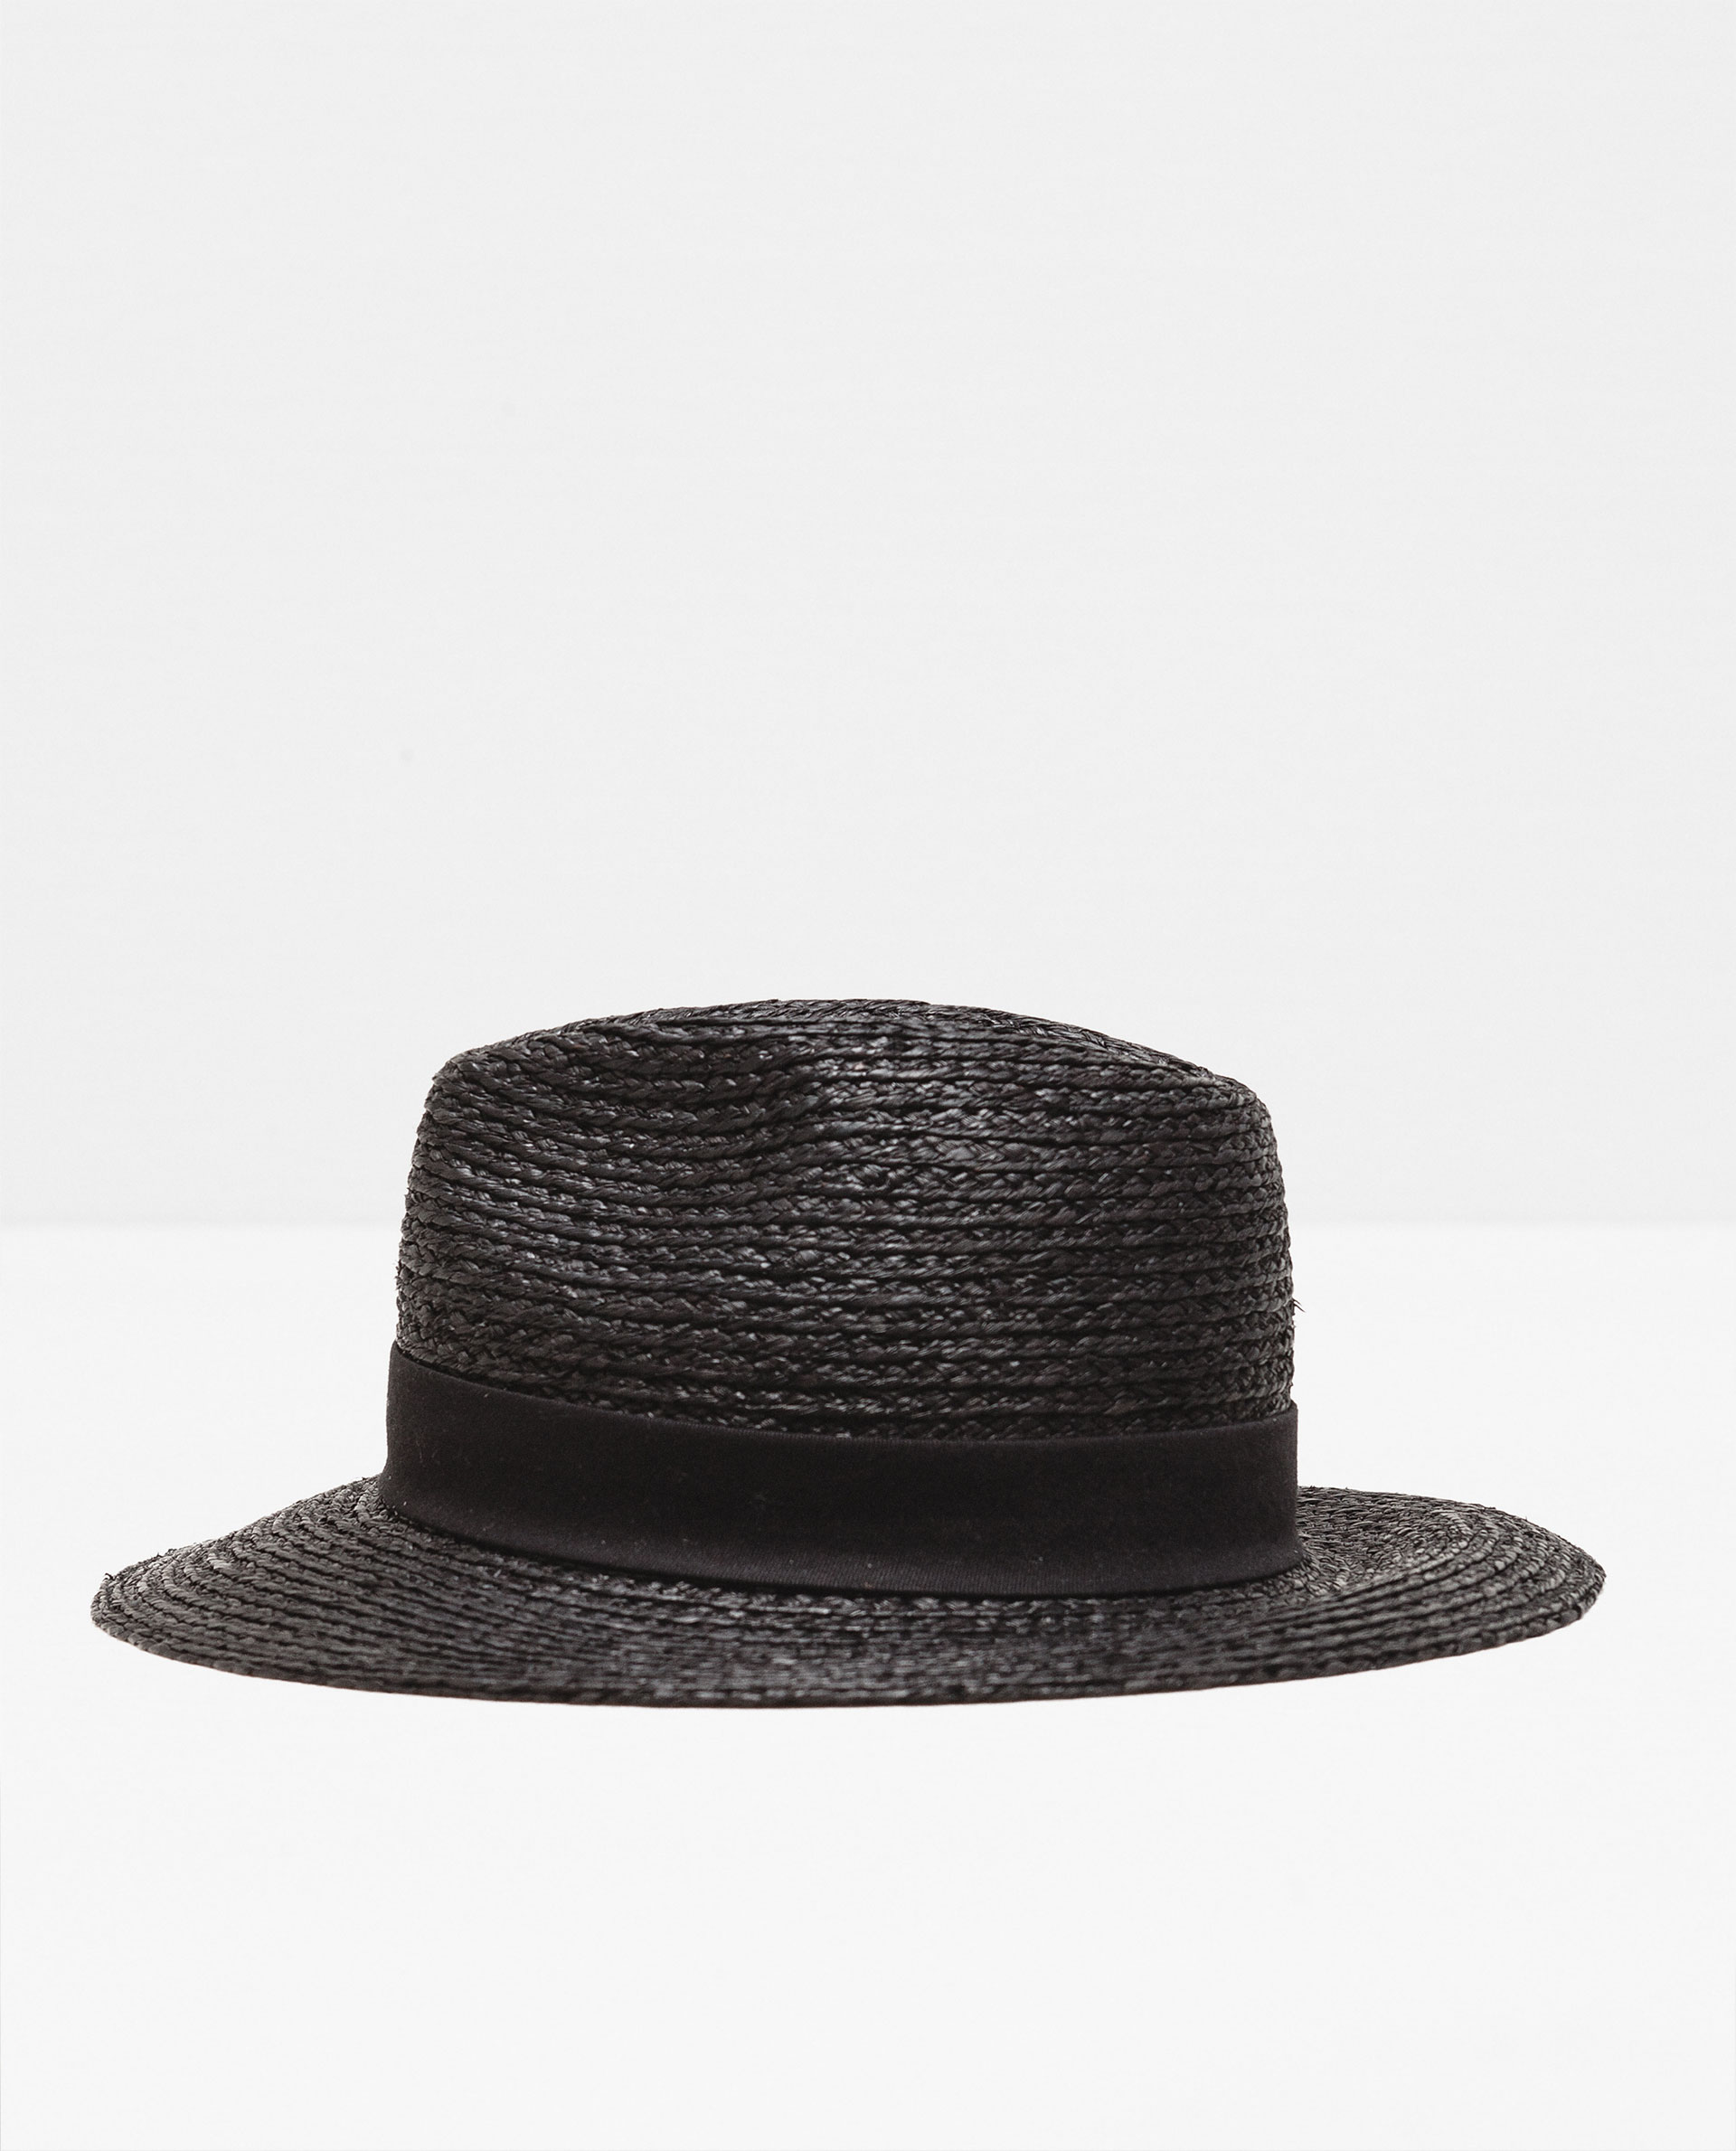 zara black straw hat beach.jpg